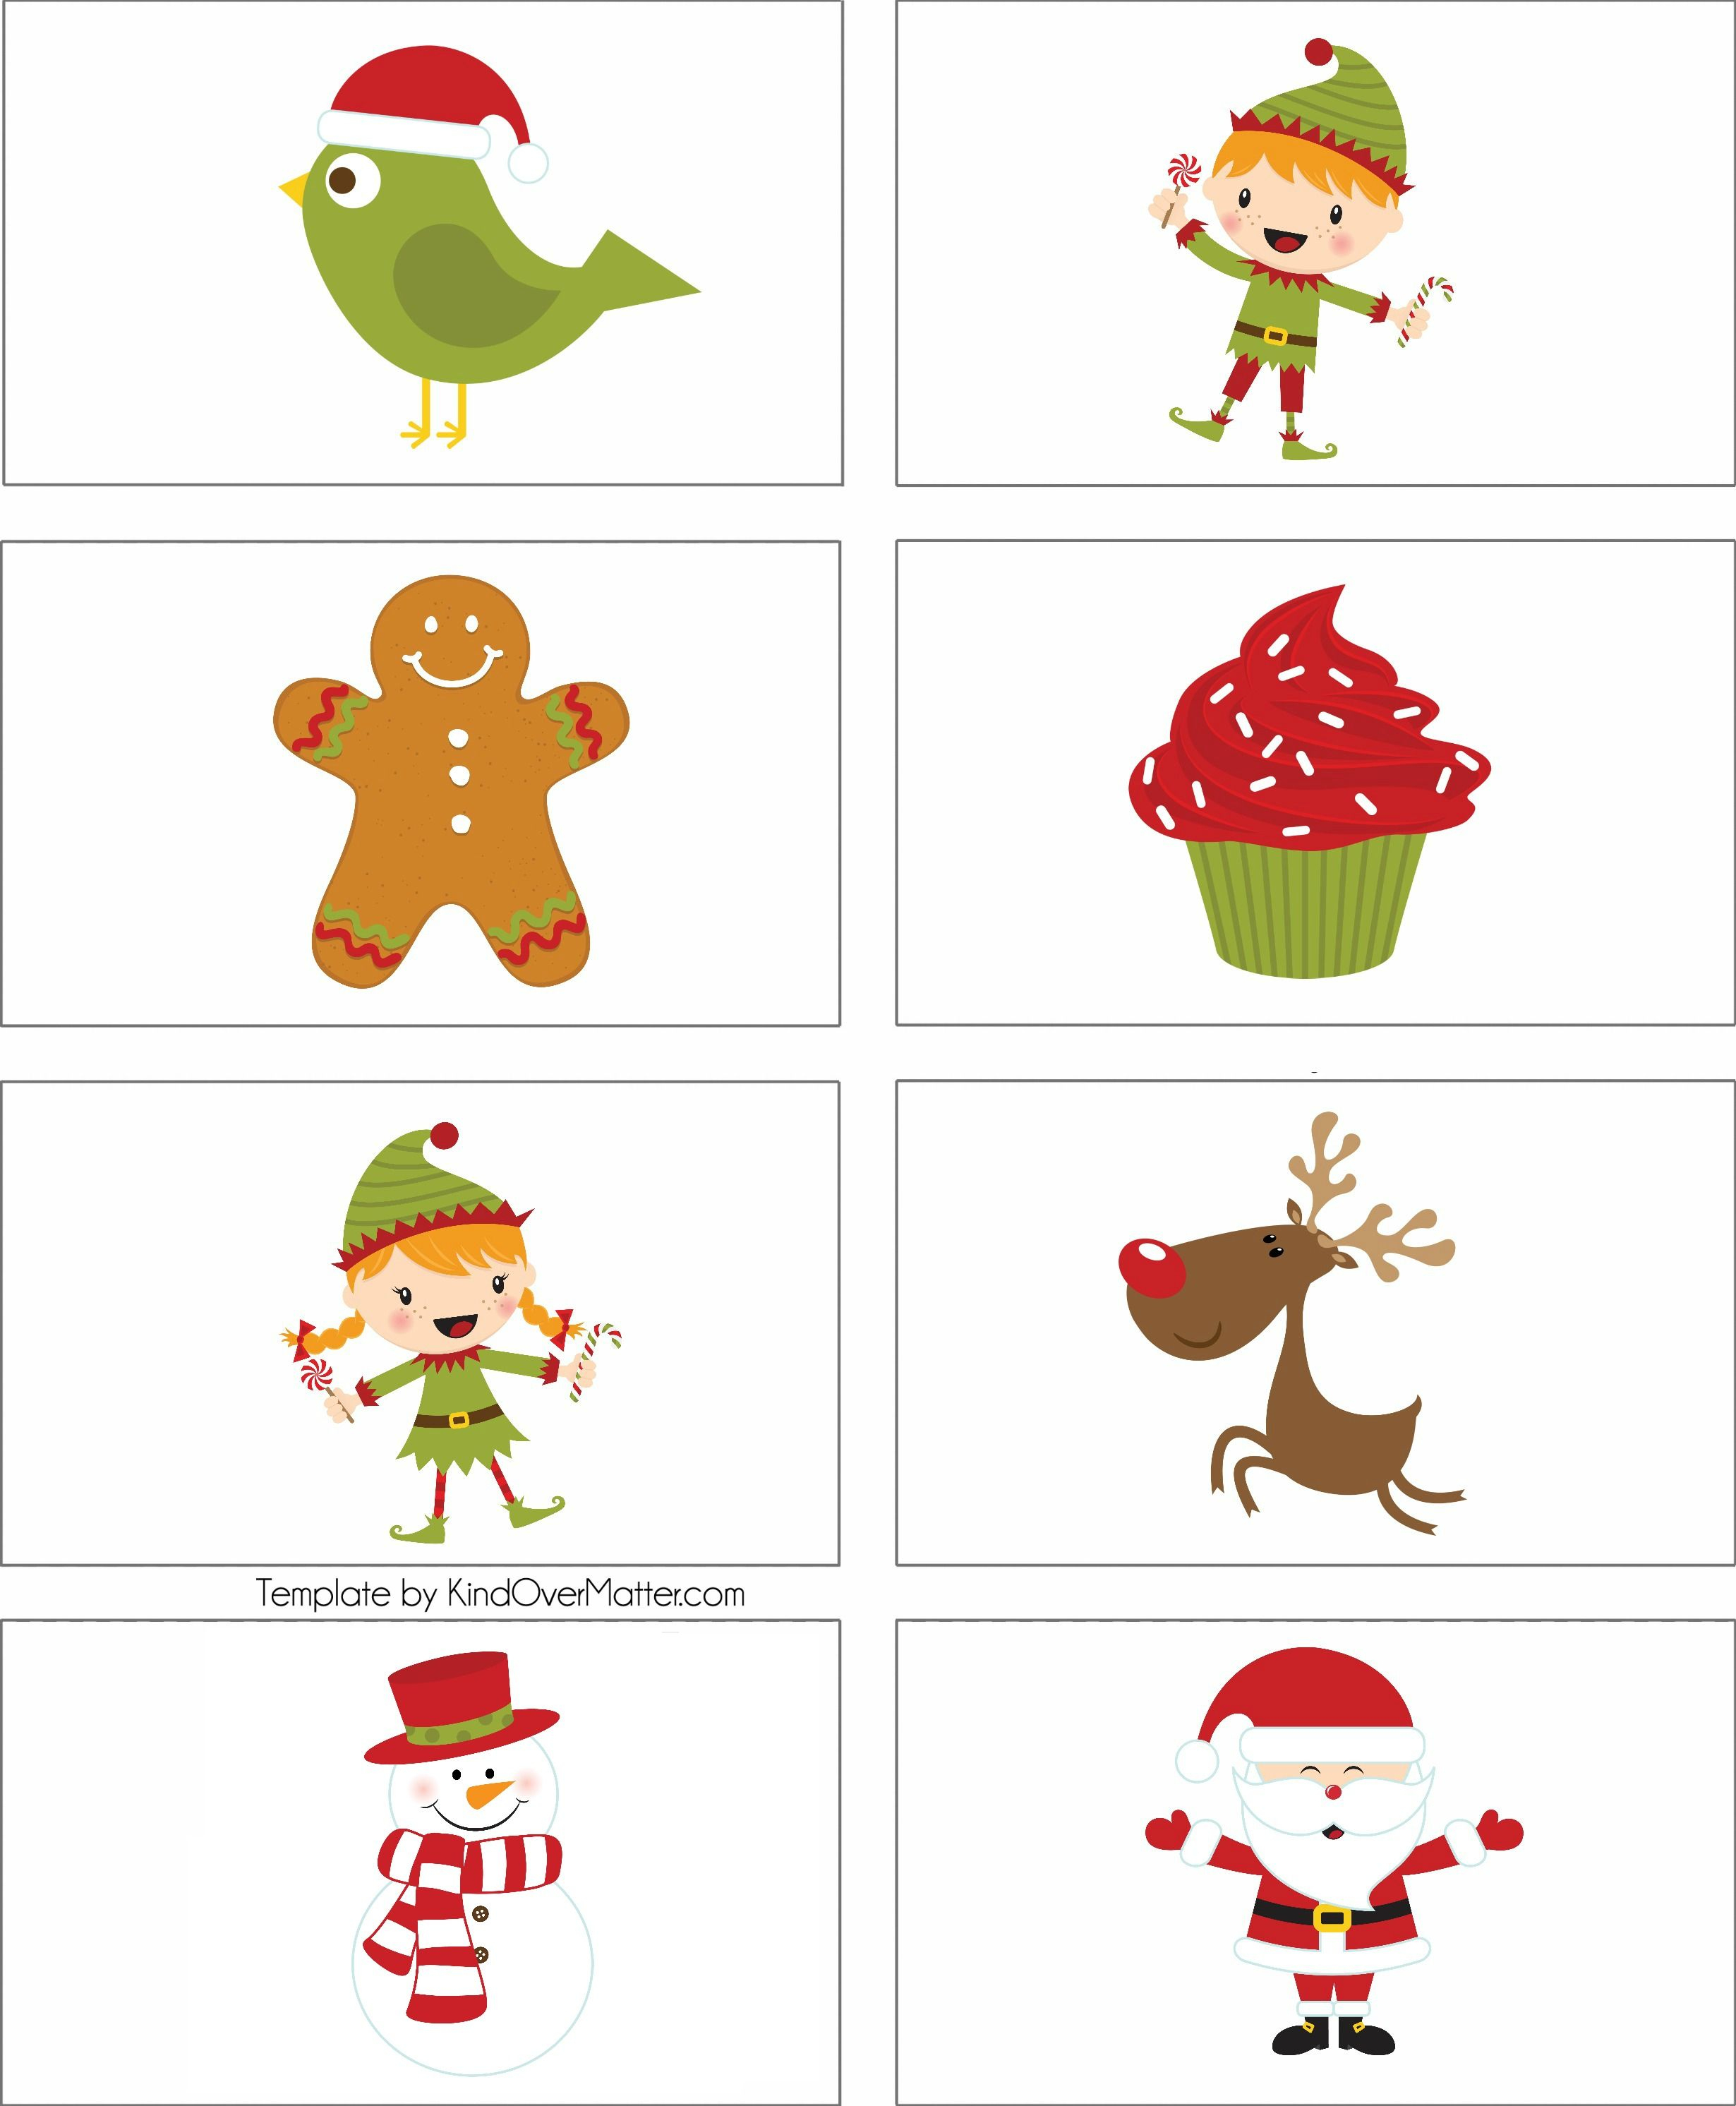 Free Printable Christmas Cards | Christmas Card Stock Paper Printer - Free Printable Card Stock Paper